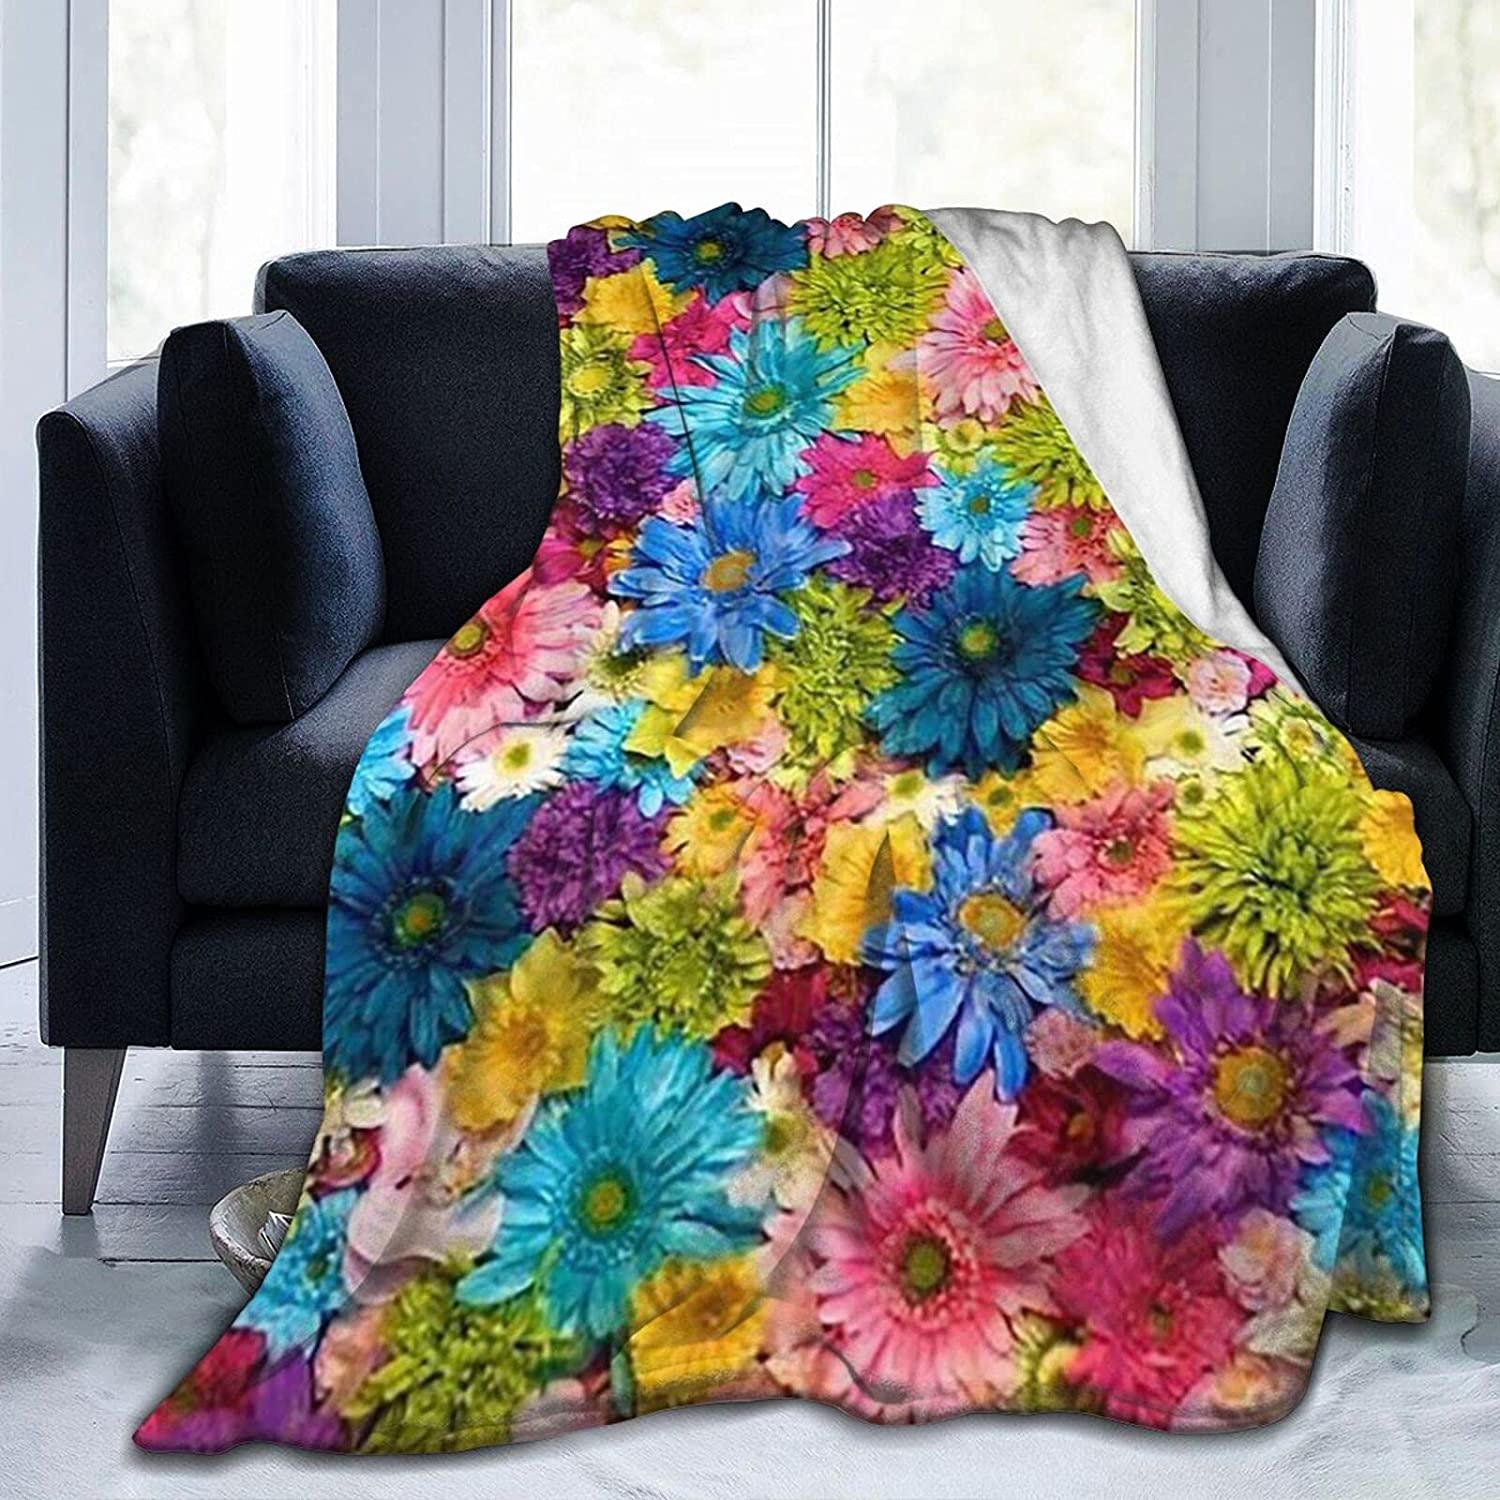 Limited time for free shipping Flowers Blanket Throws Soft Our shop OFFers the best service Warm Conditioning Air Comfy